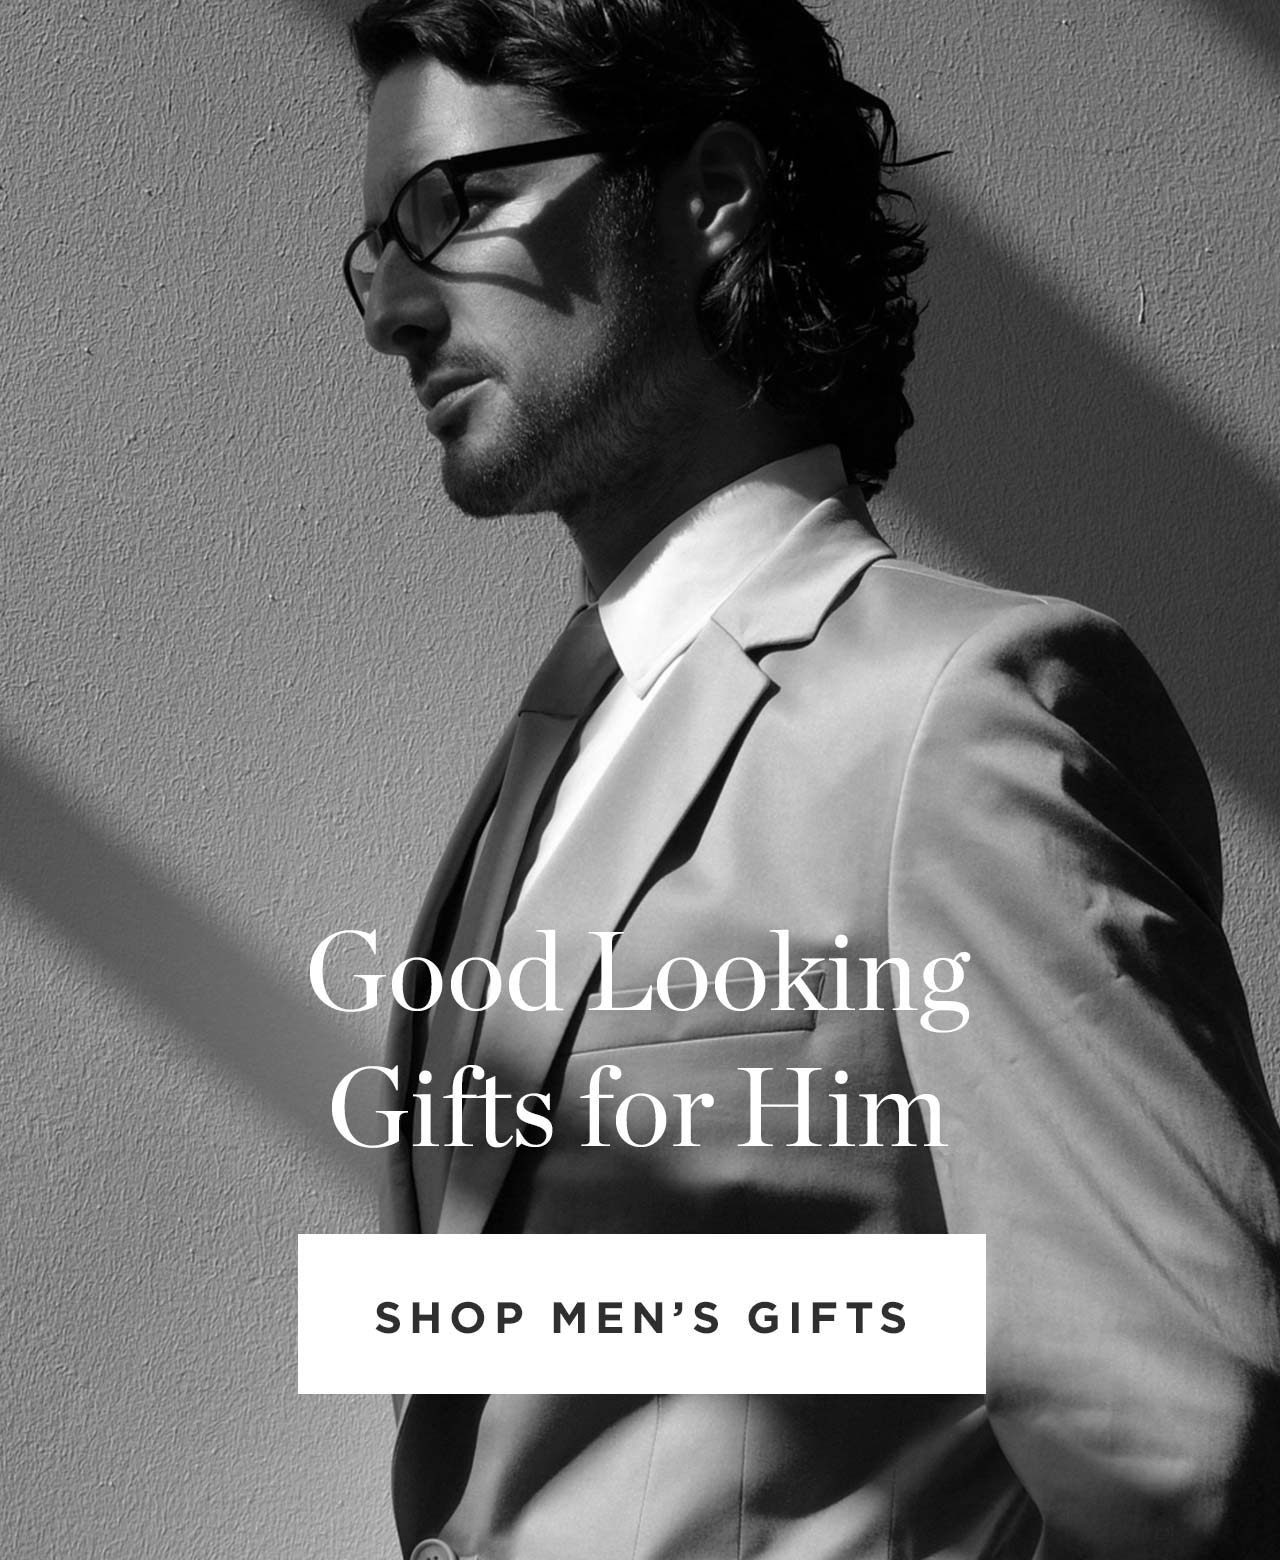 Good Looking Gifts for Him